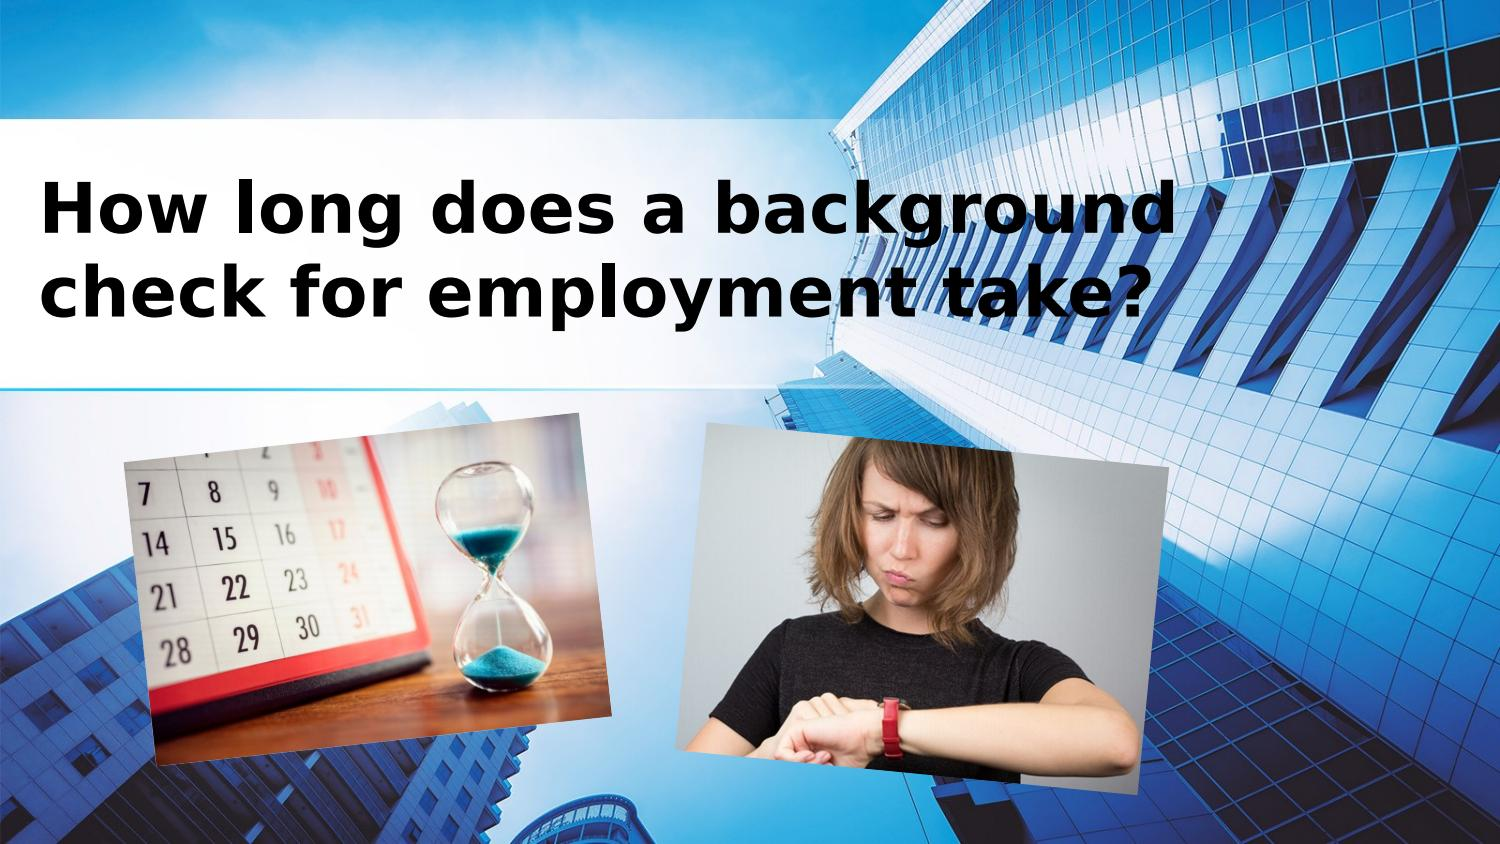 How long does a background check for employment take? by